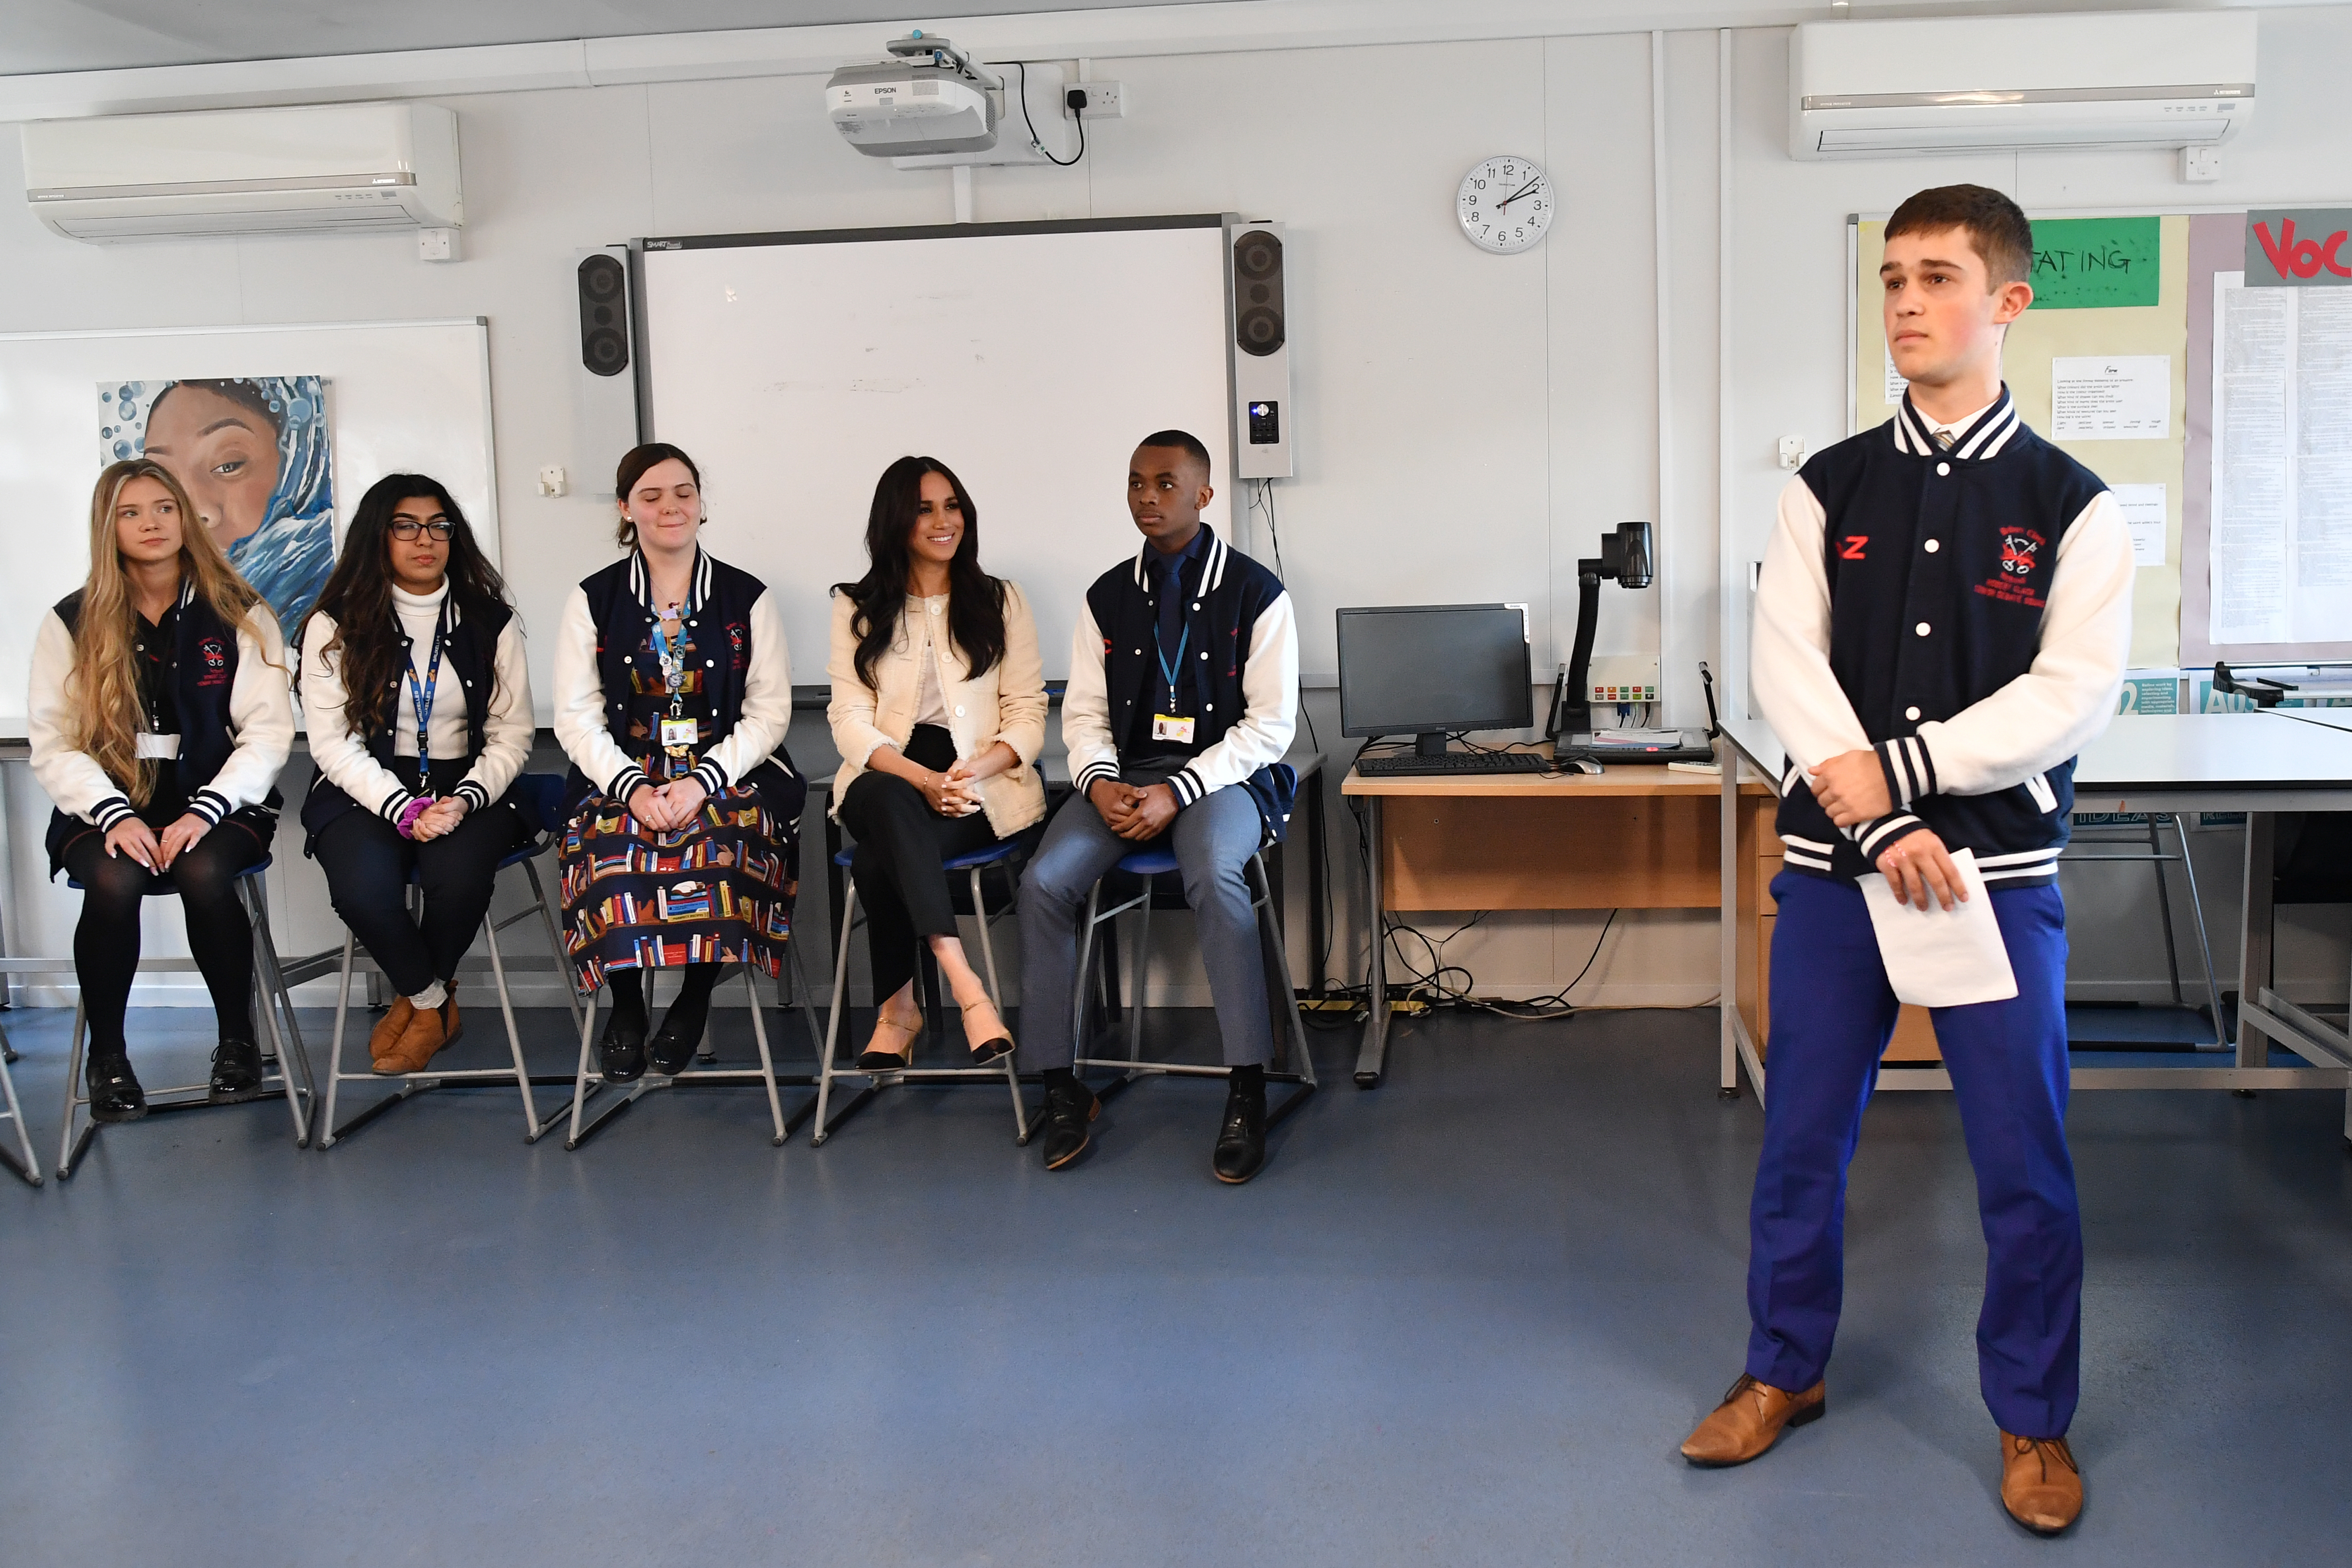 The Duchess of Sussex (fourth left) joins in a discussion of the 'Senior Debate Squad' at the Robert Clack Upper School in Dagenham, Essex, during a surprise visit to celebrate International Women's Day.